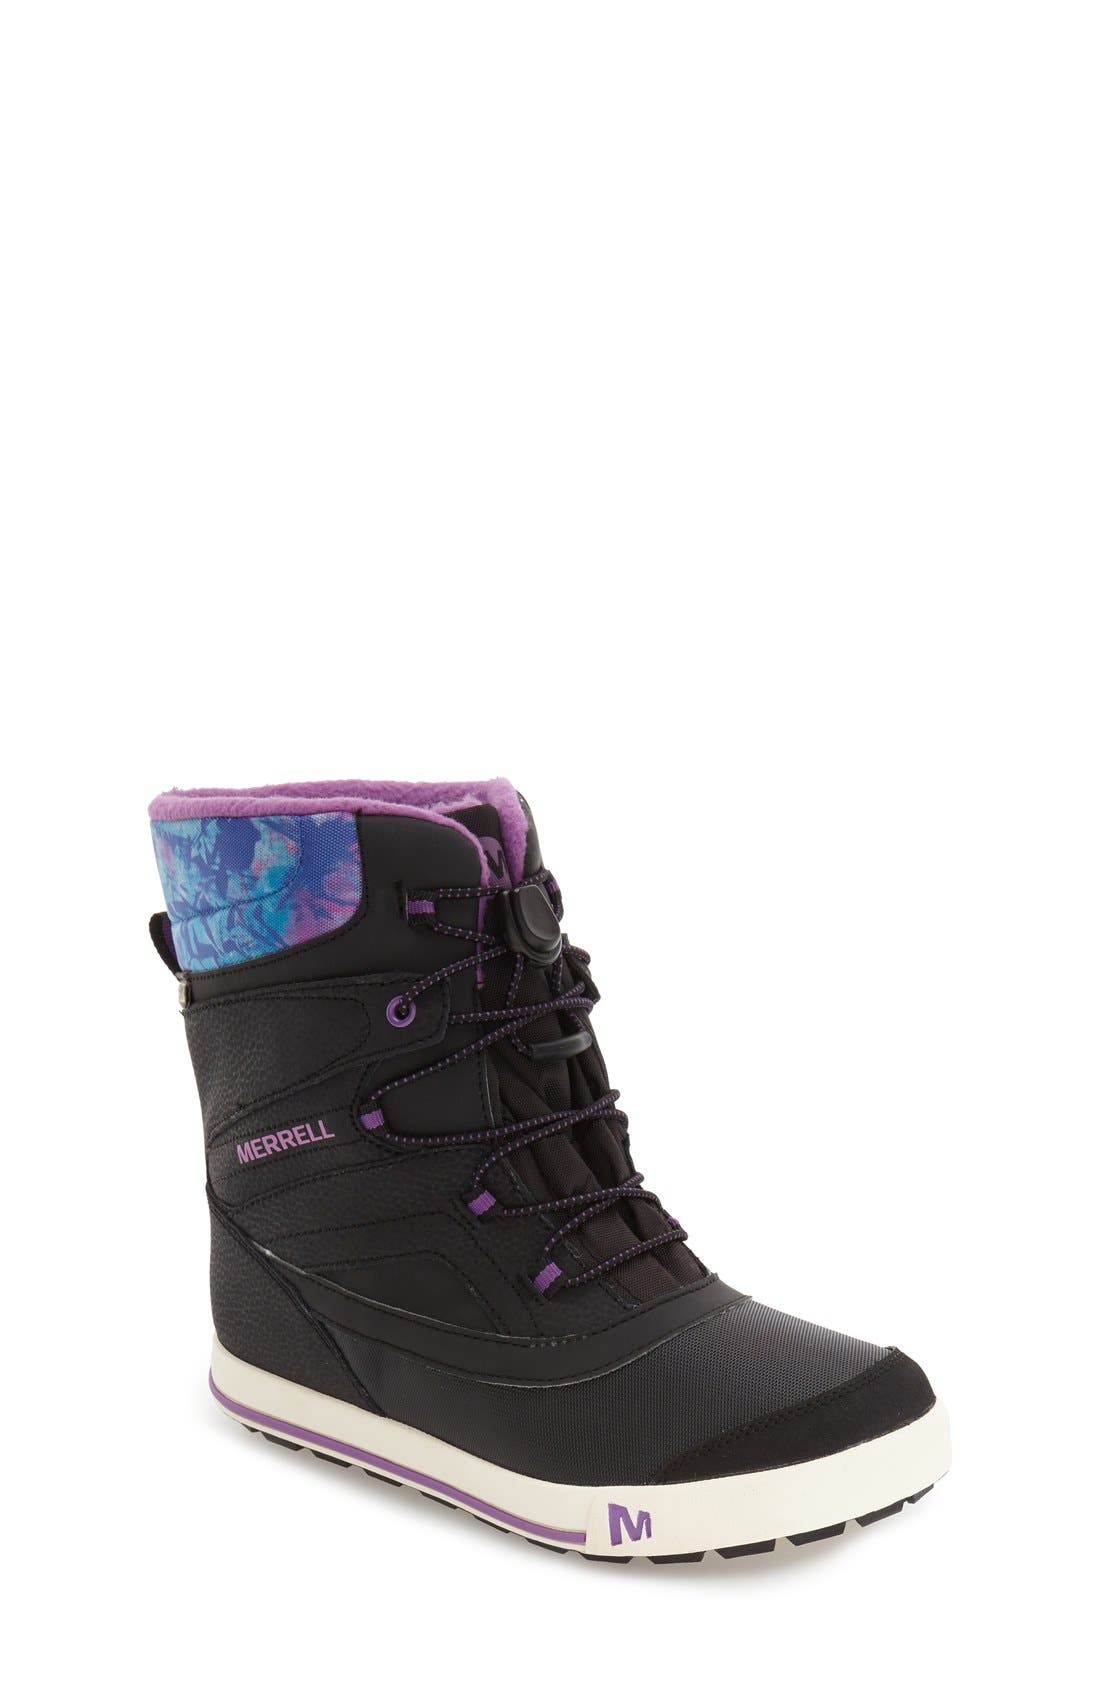 'Snow Bank 2' Waterproof Boot,                             Main thumbnail 1, color,                             BLACK/ PRINT/ BERRY LEATHER